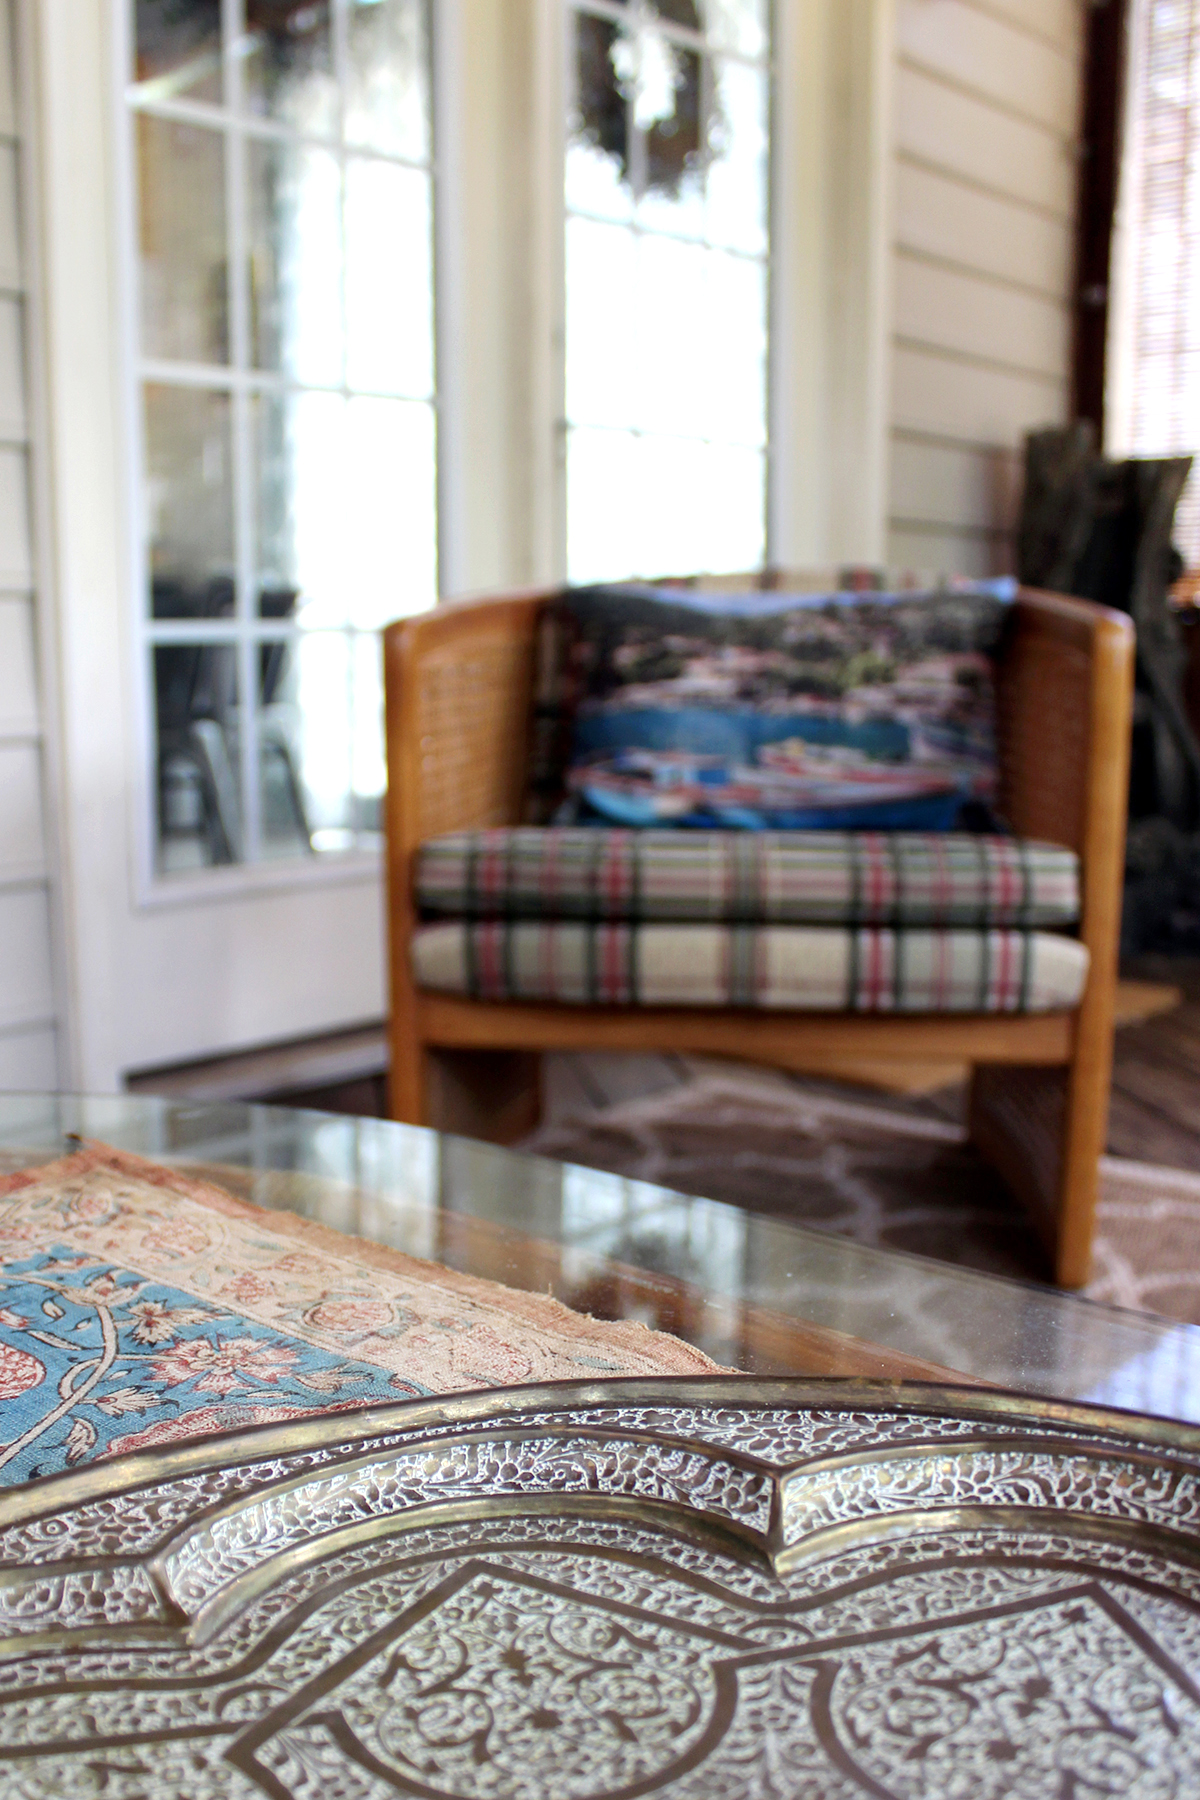 tips for decorating a rustic screened porch on a small budget #outdoorstyle #outdoordesign #screenedporch